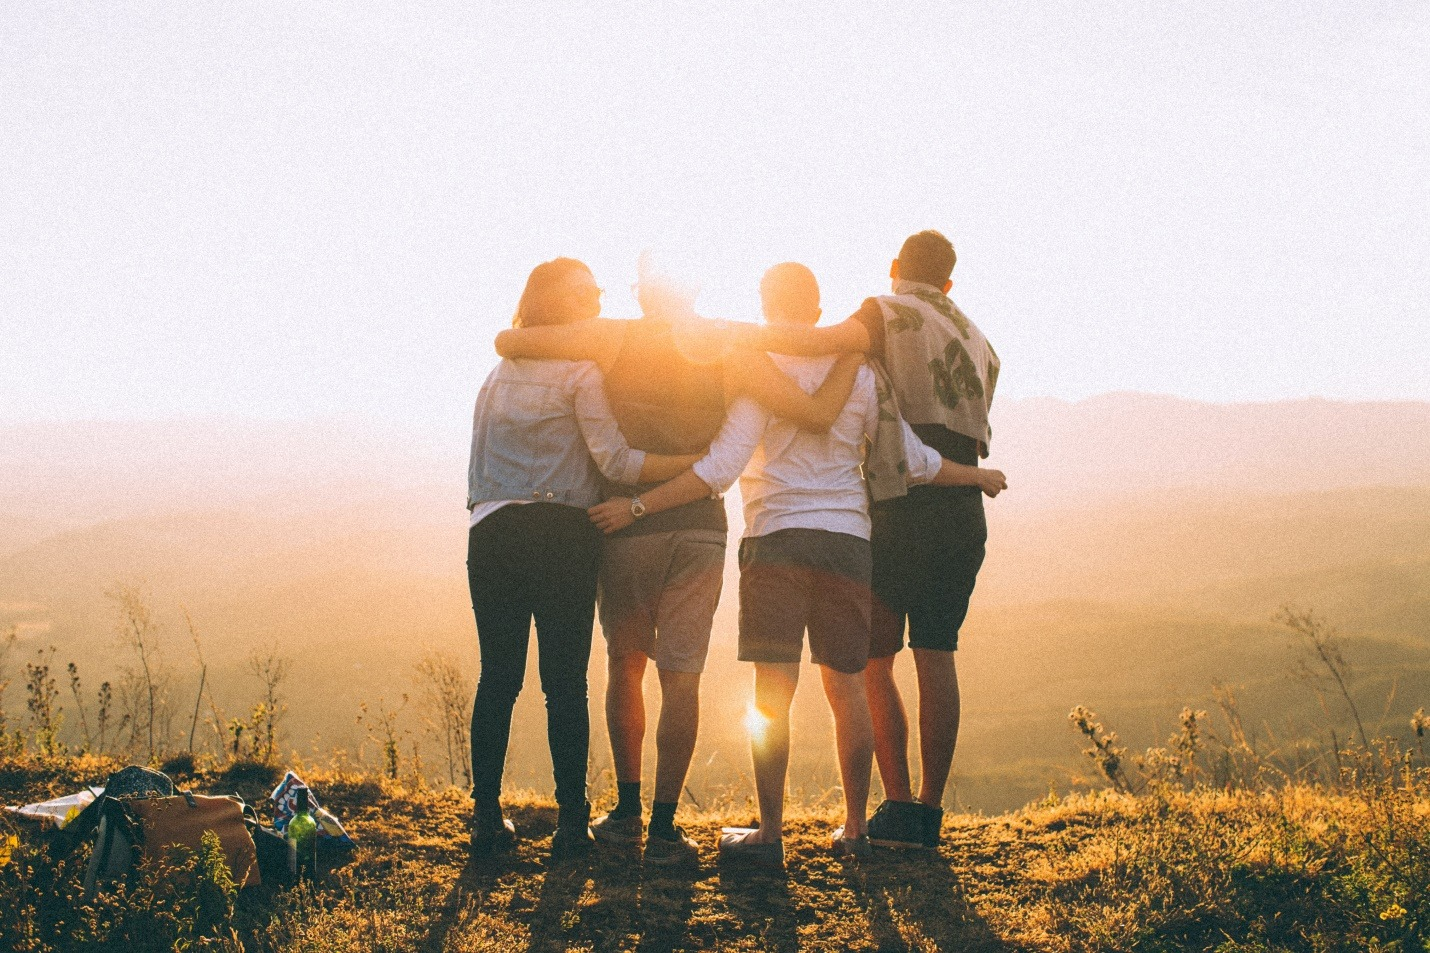 Group of friends hold up hands on the peak of mountain